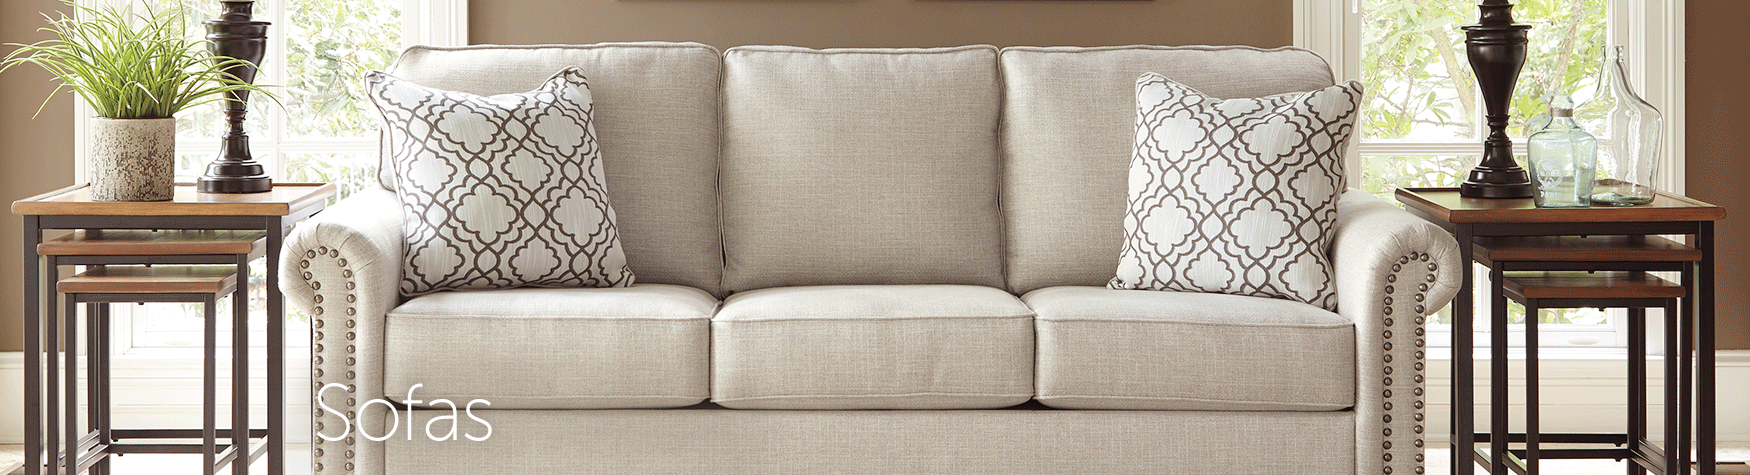 Sofa For Sale Online High Quality Comfortable Affordable Sofas For Sale Online